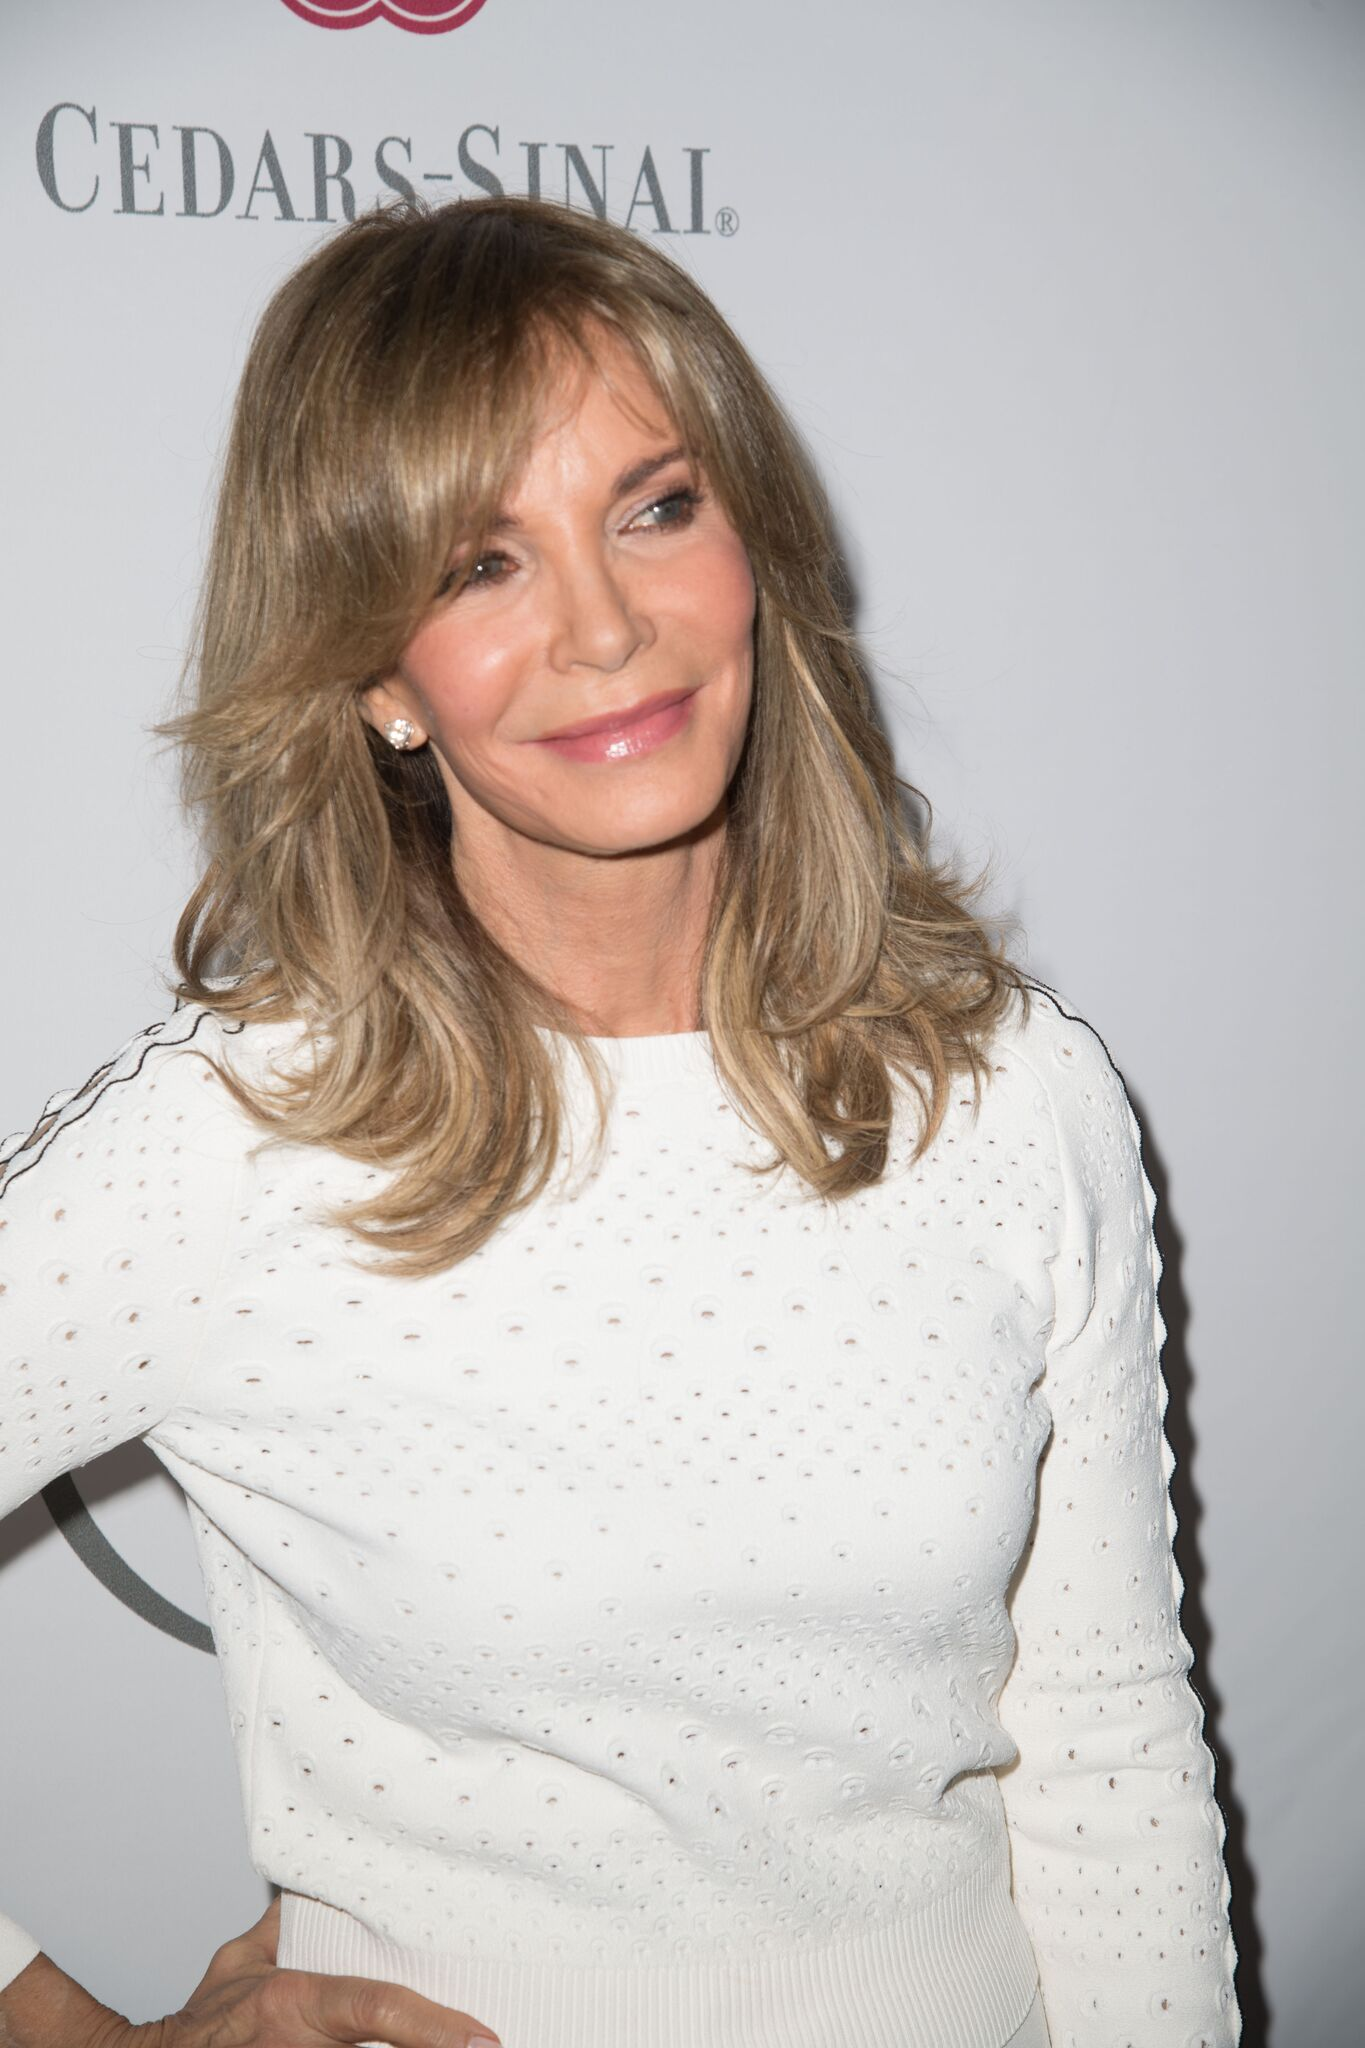 Jaclyn Smith attends the 2016 Women's Guild Cedars-Sinai Annual Spring Luncheon | Getty Images